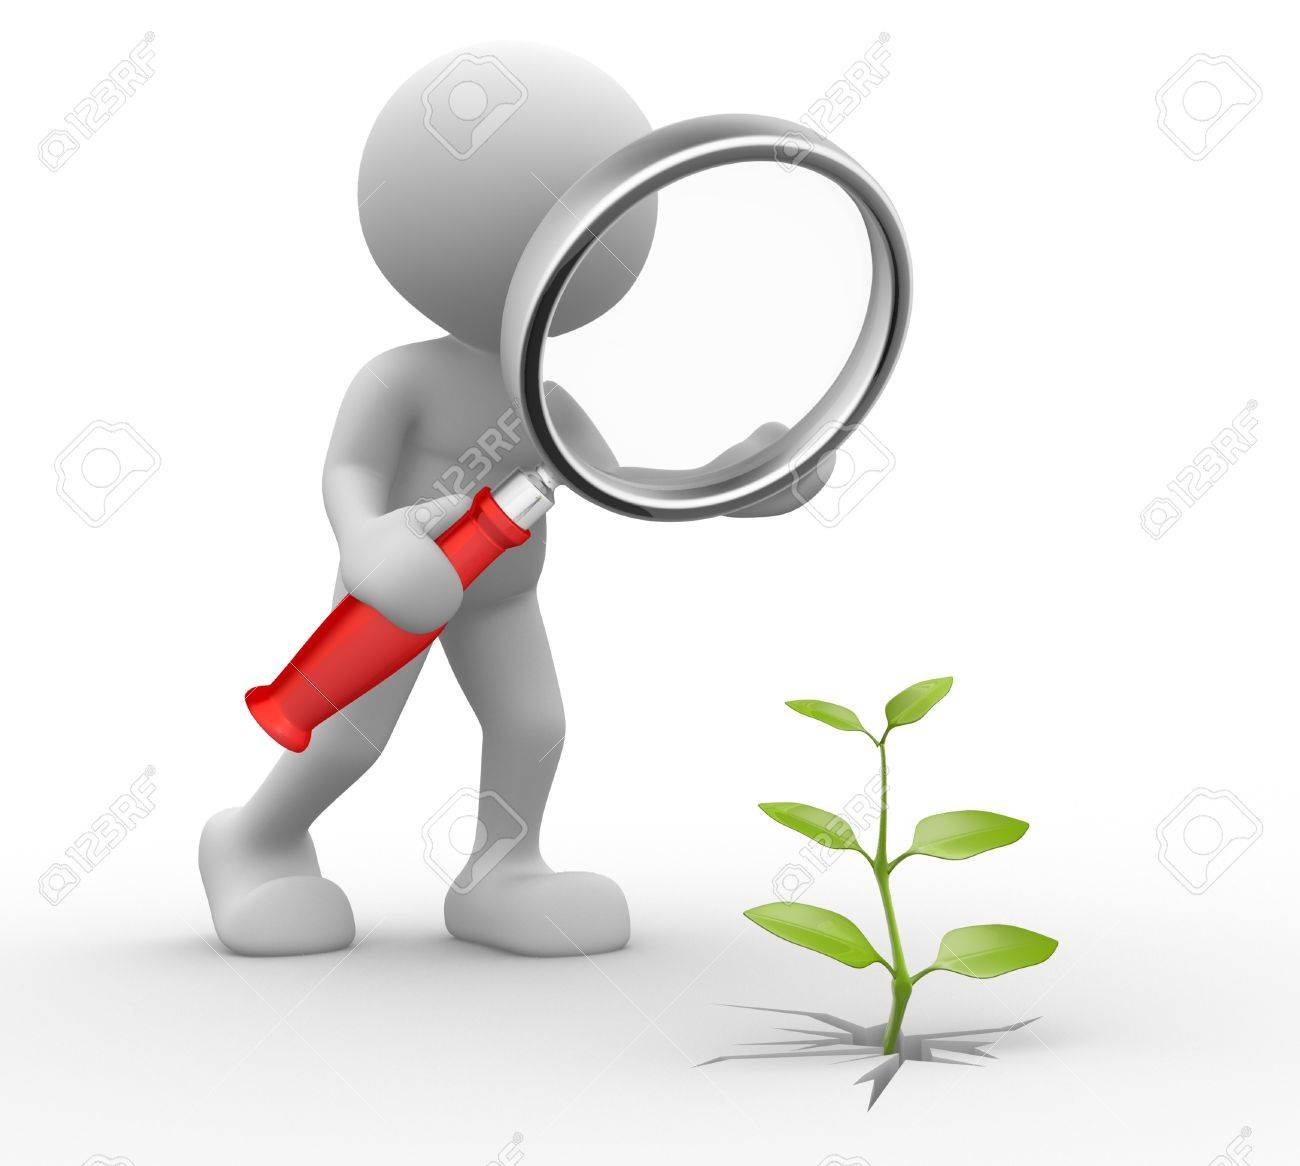 3d people - man, person with a magnifying glass and a sprout. Stock Photo - 17276687